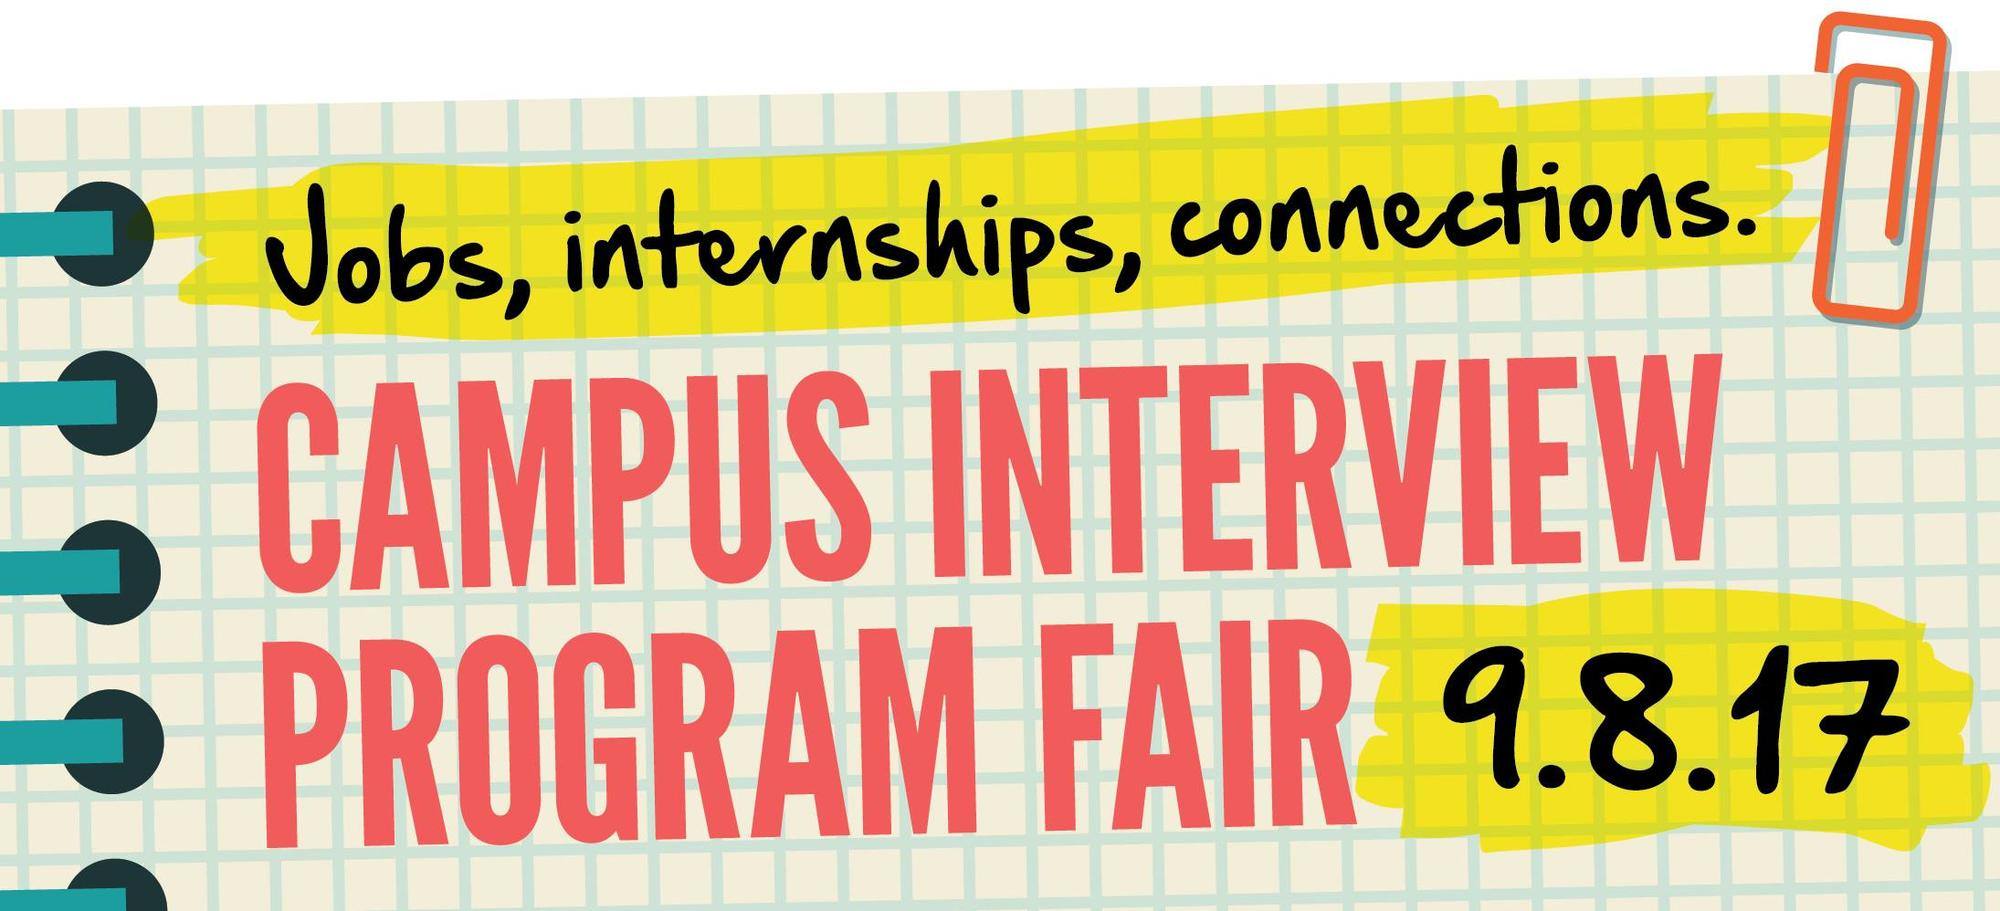 Campus Interview Program Fair